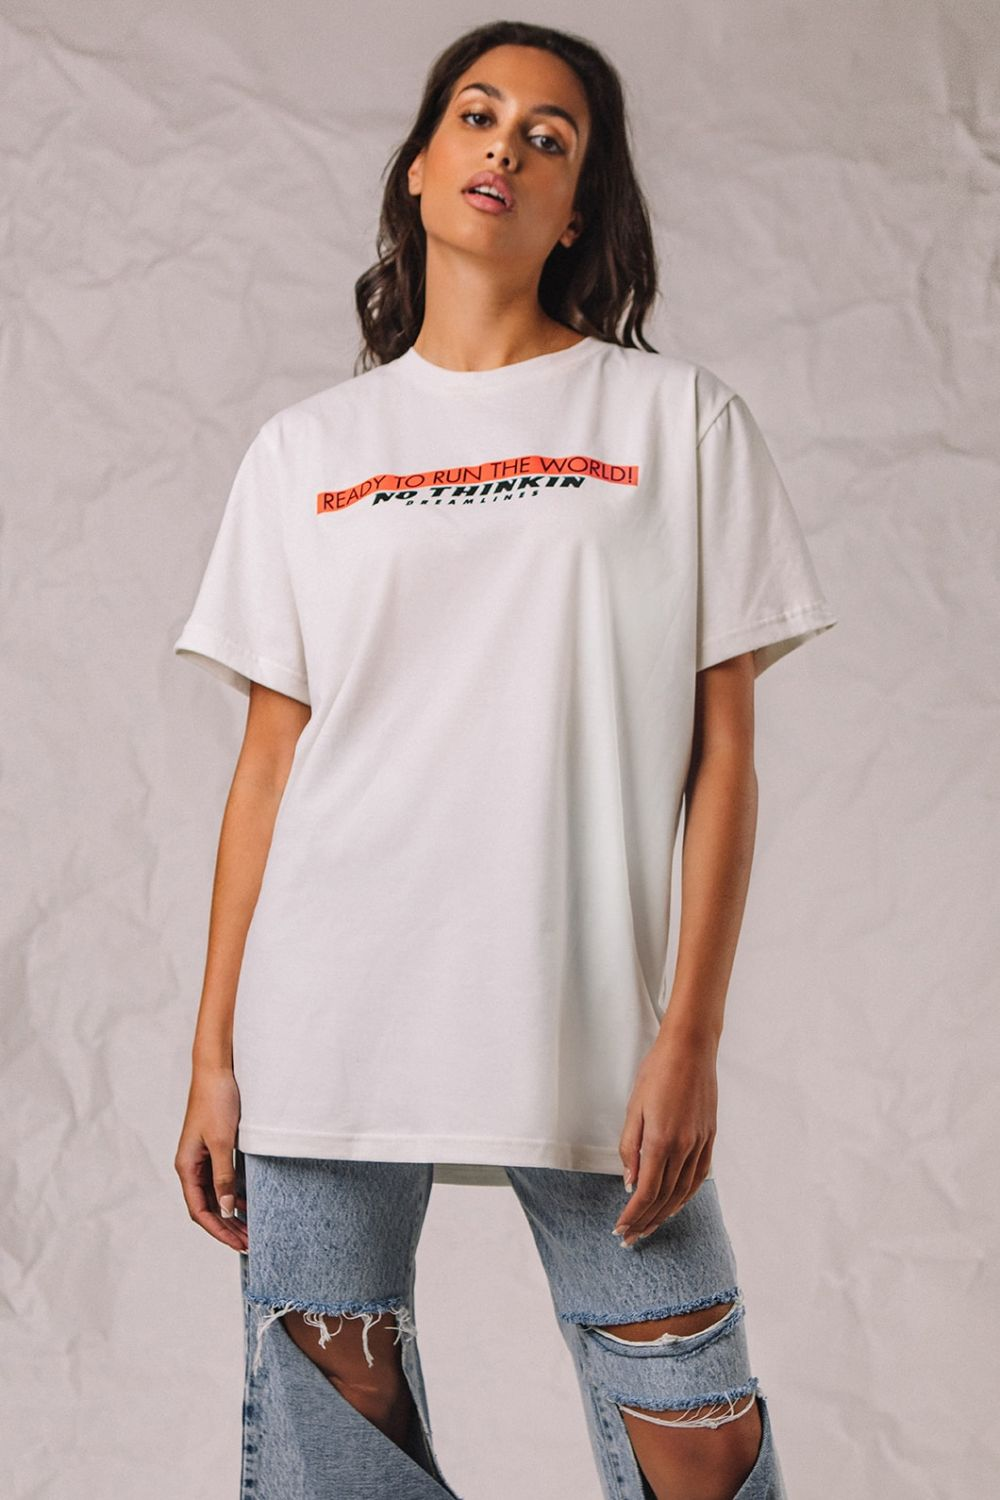 The Authentic Dreamlines white top